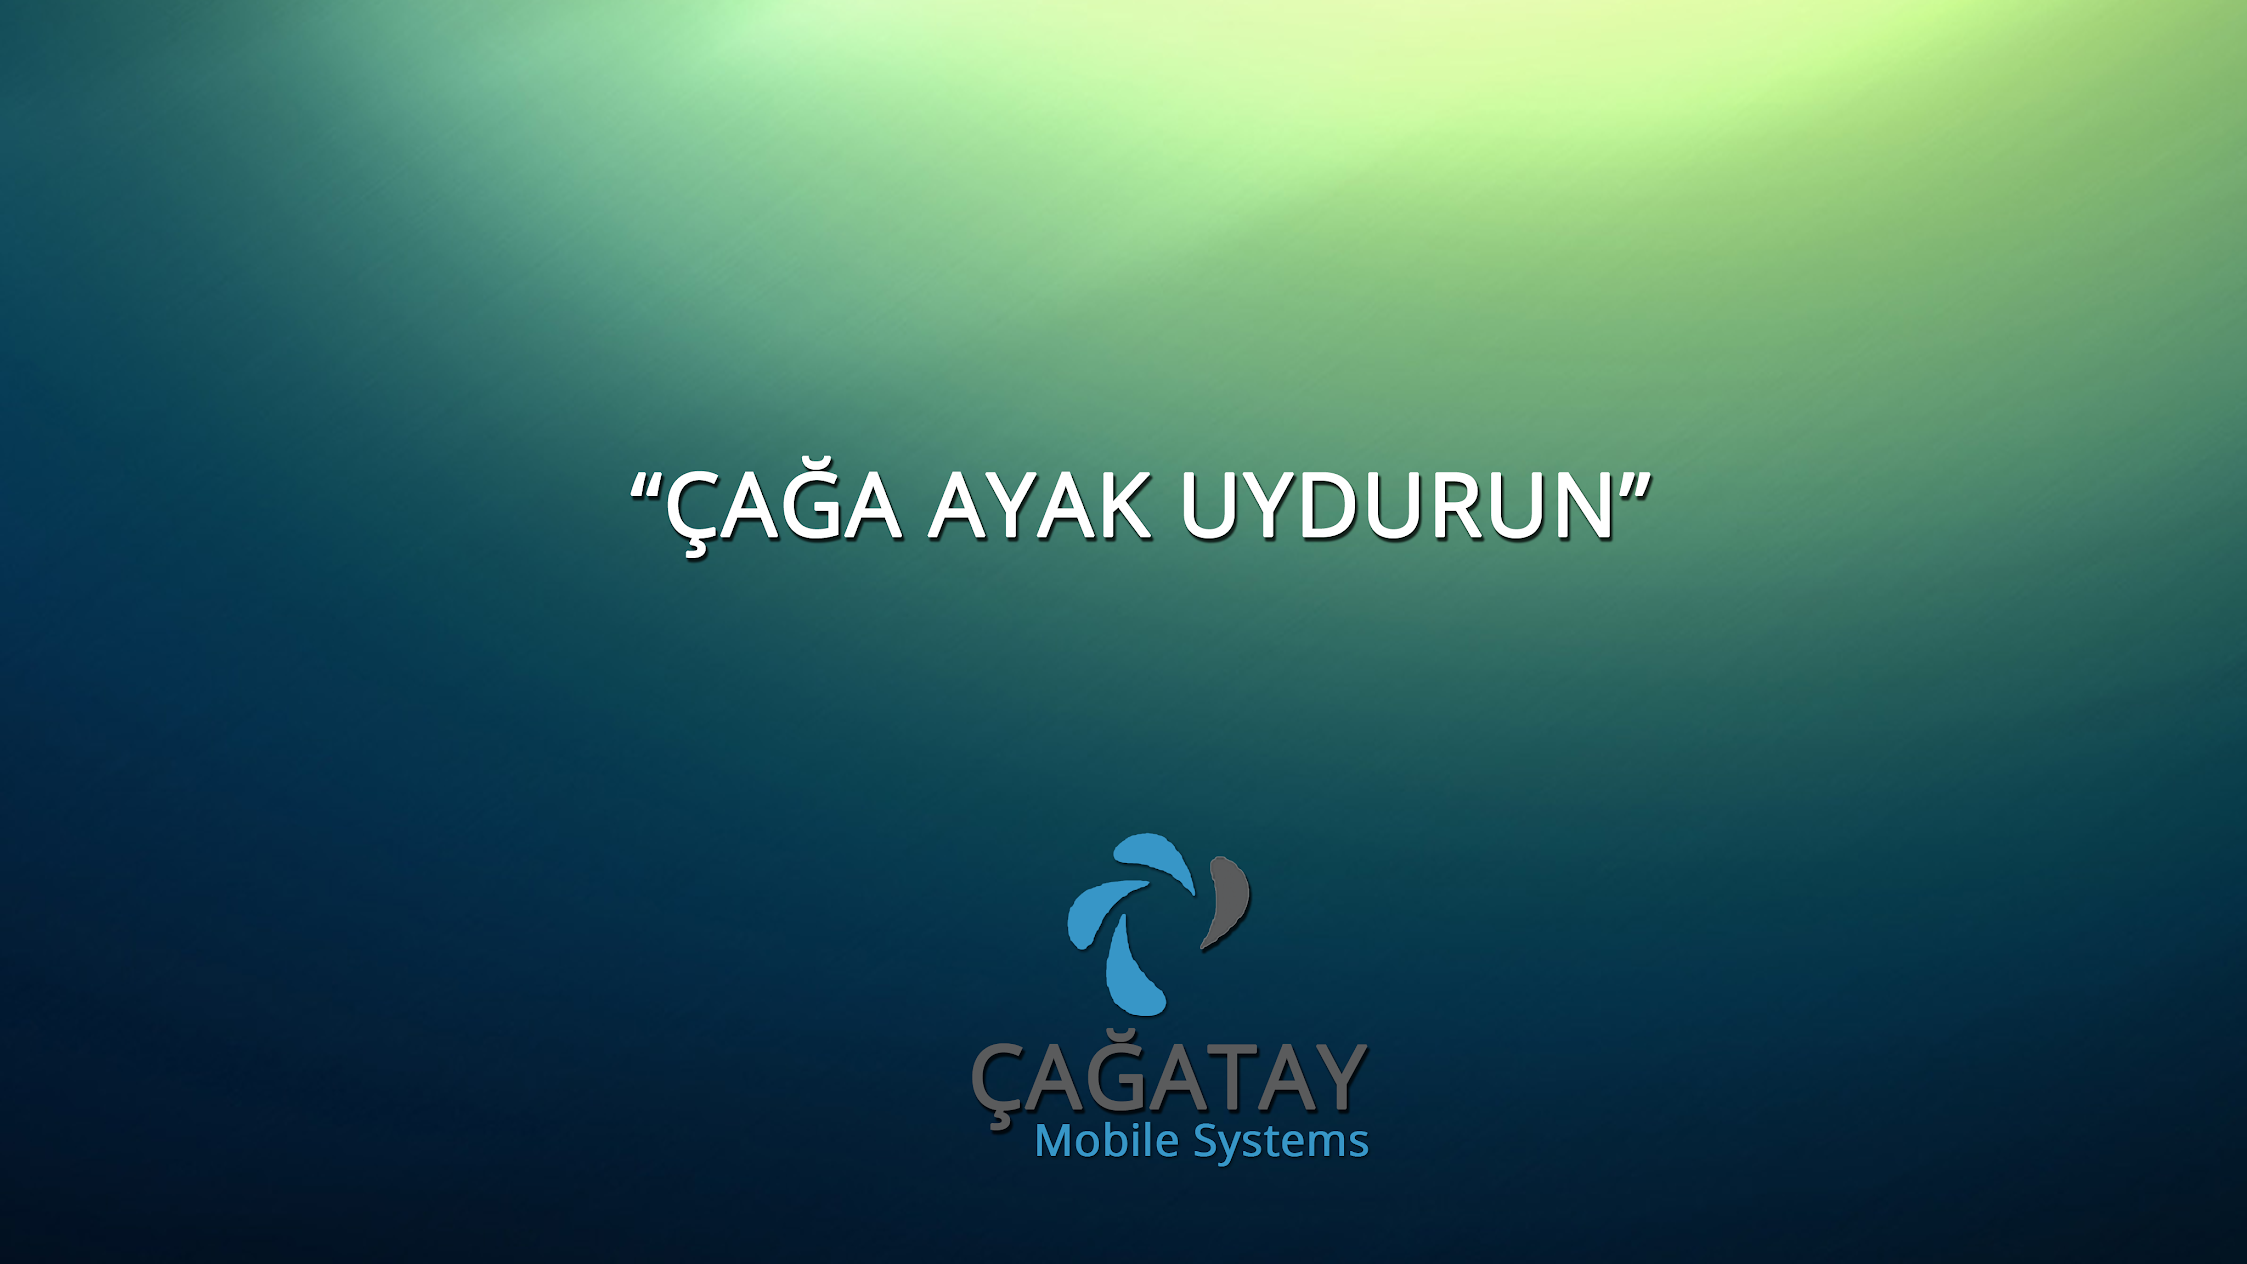 Cagatay Mobile Systems